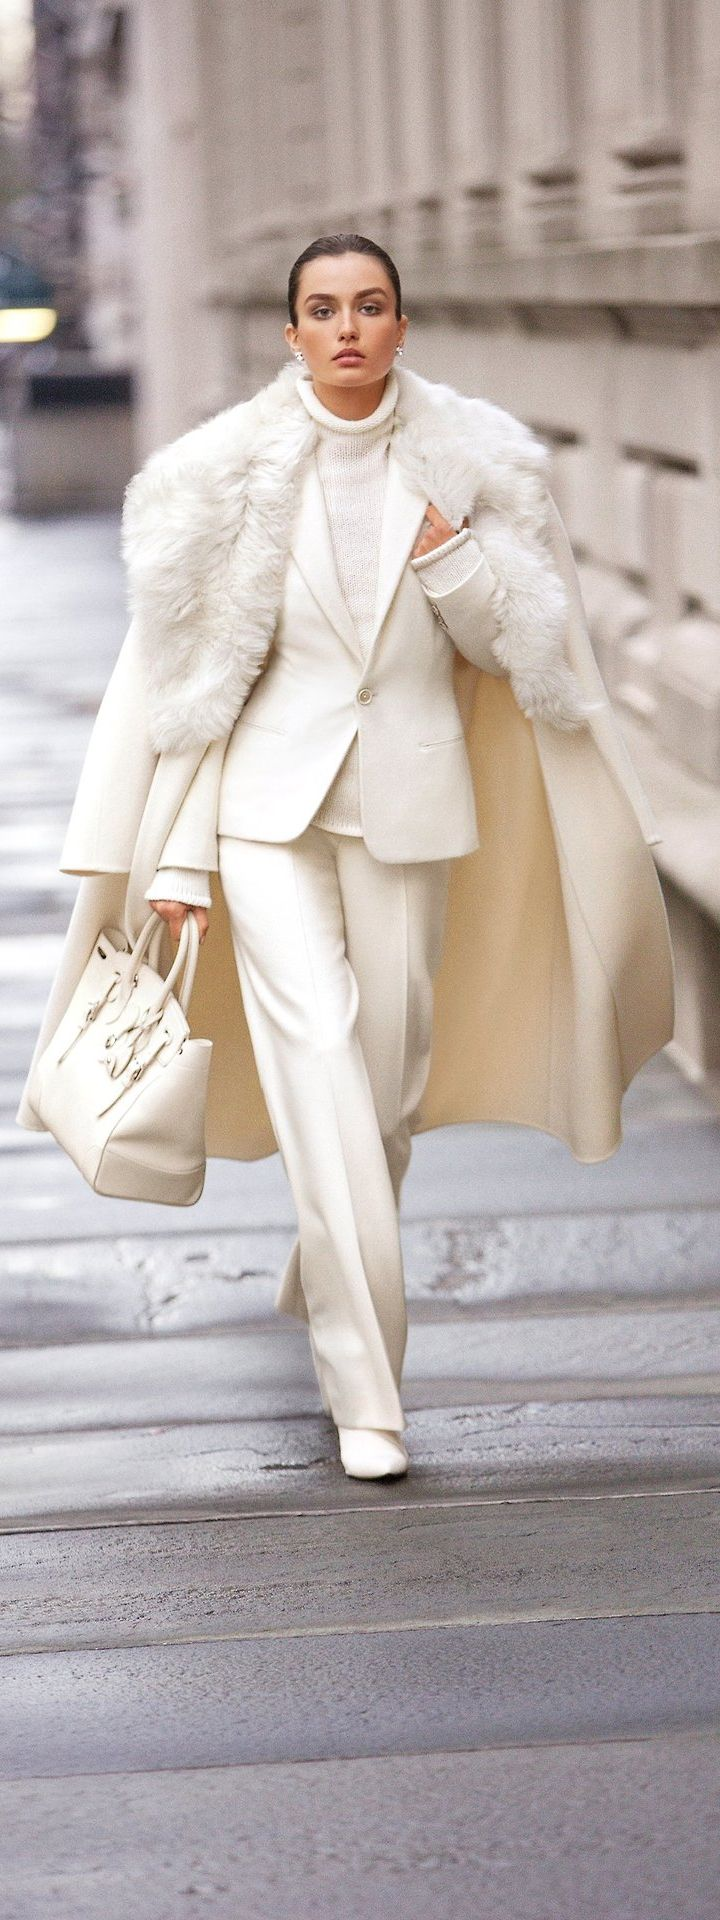 All White Outfit | Formal Wear | Corporate Look | Minimalism | White on White | What to wear to office | Fall Winter Fashion Trends